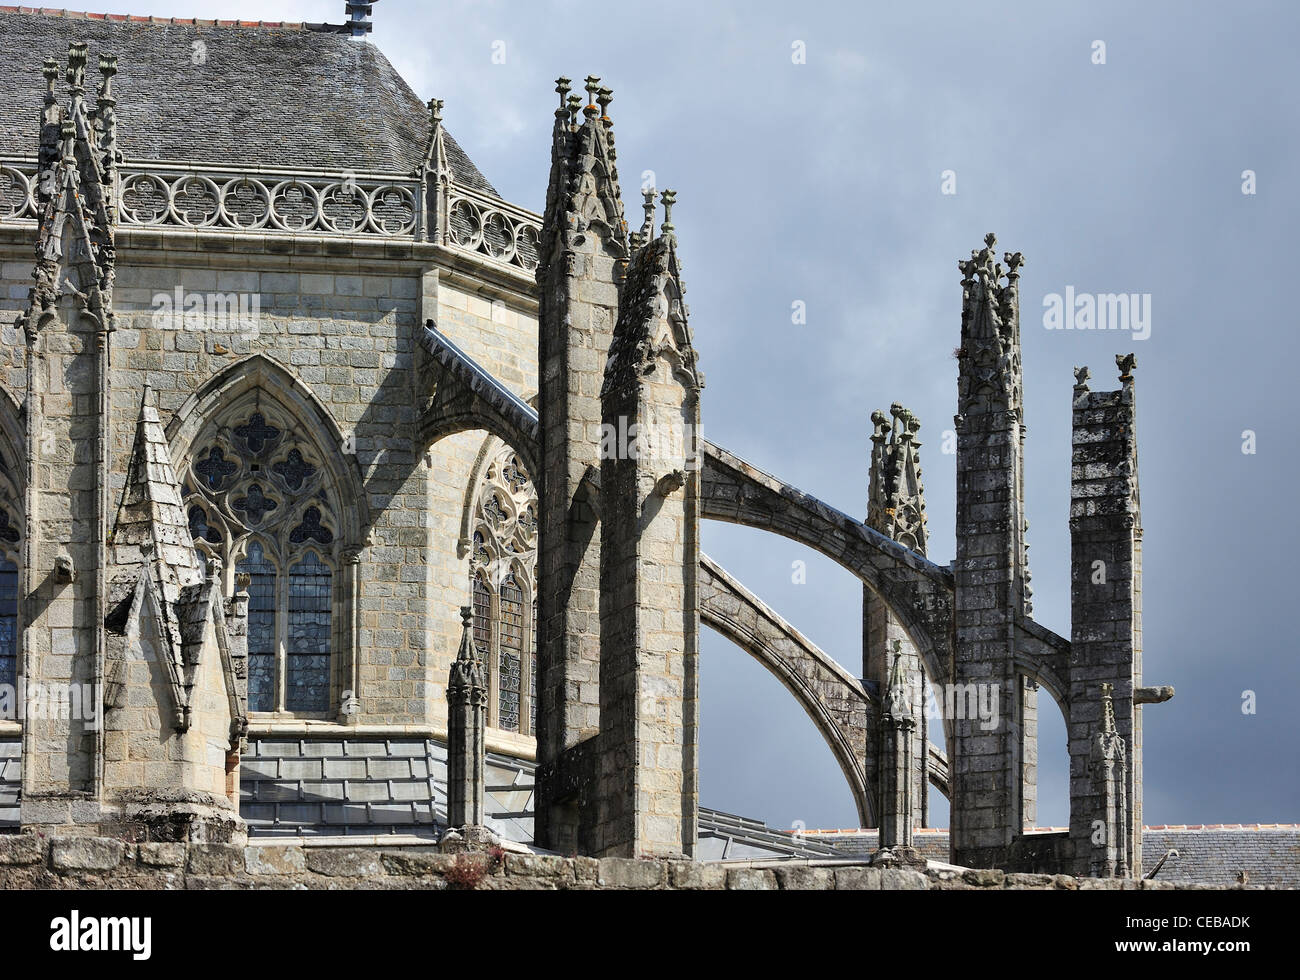 Flying Buttresses Of The Gothic Quimper Cathedral Cathedrale Saint Corentin De Finistere Brittany France